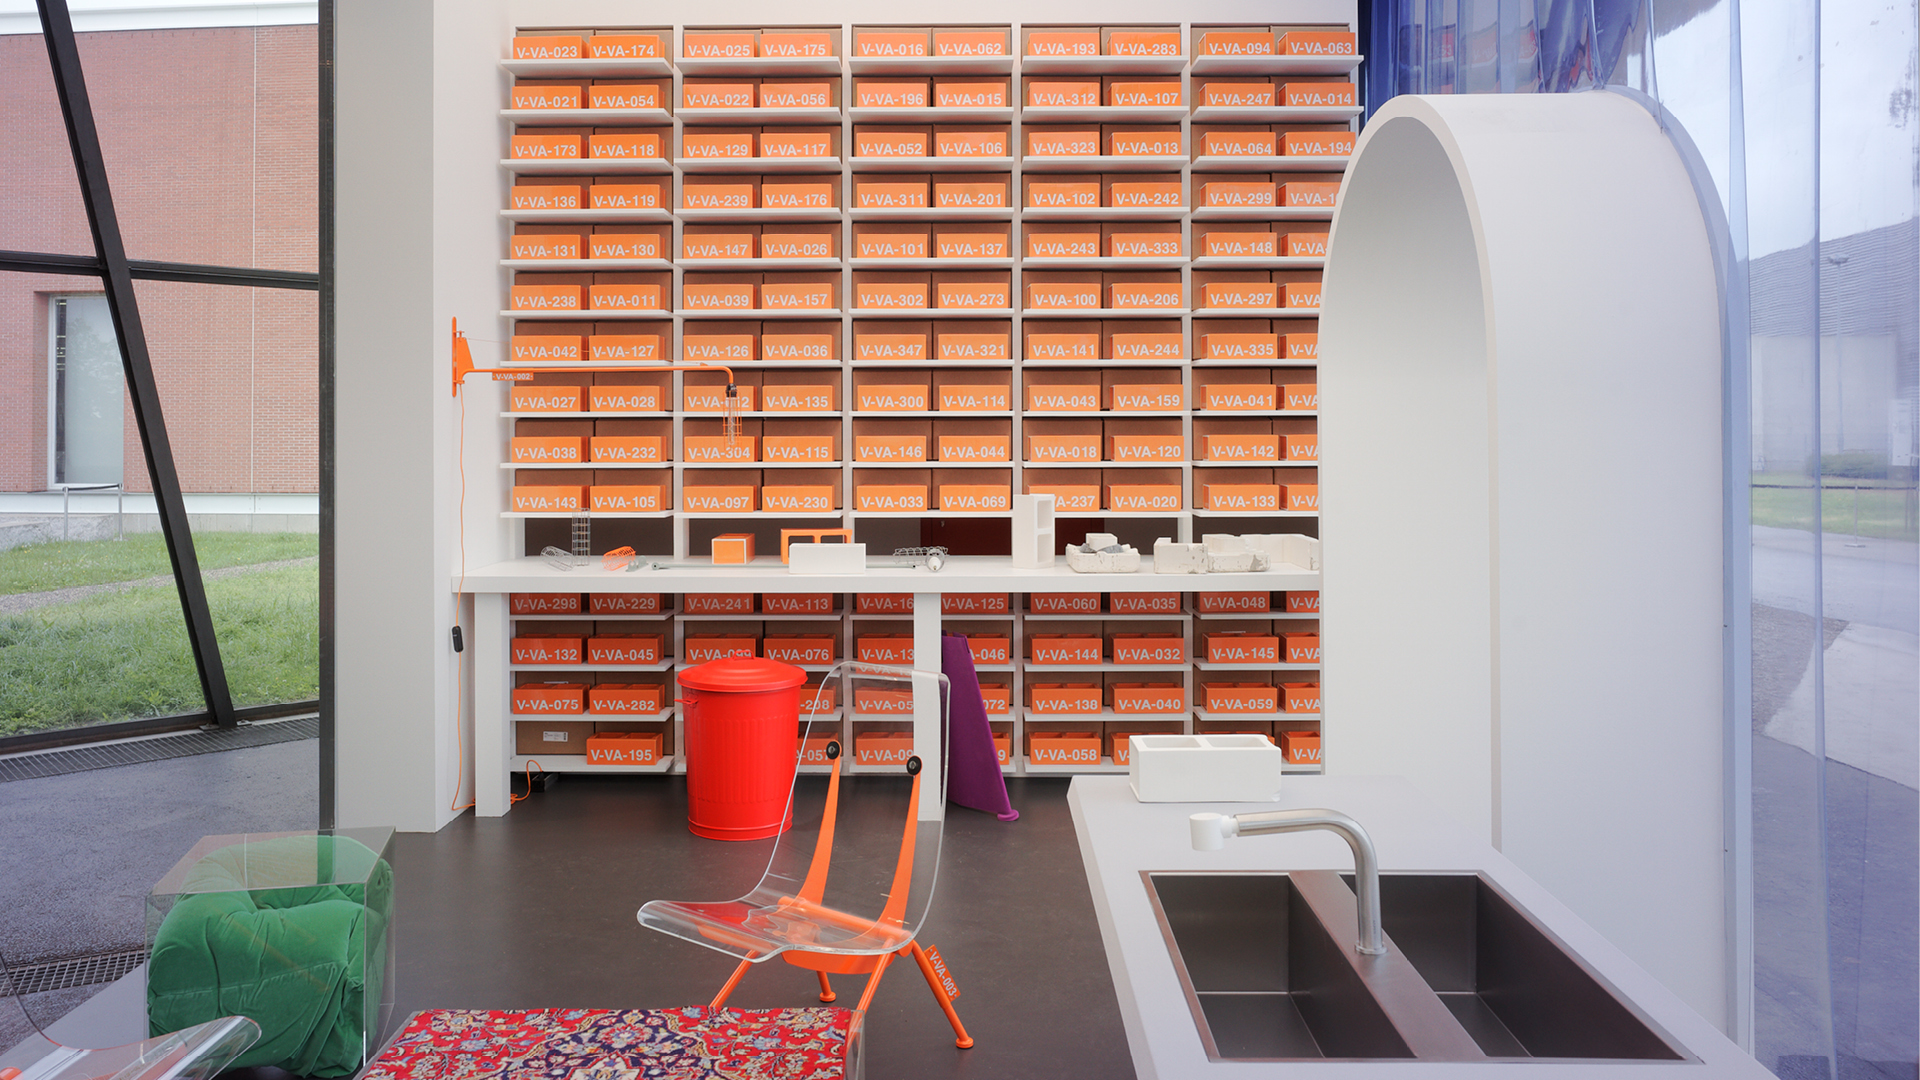 The centrepiece of the installation by Virgil Abloh for Vitra is a wall of 999 bright orange ceramic blocks| TWENTYTHIRTYFIVE| Virgil Abloh| Vitra| STIR